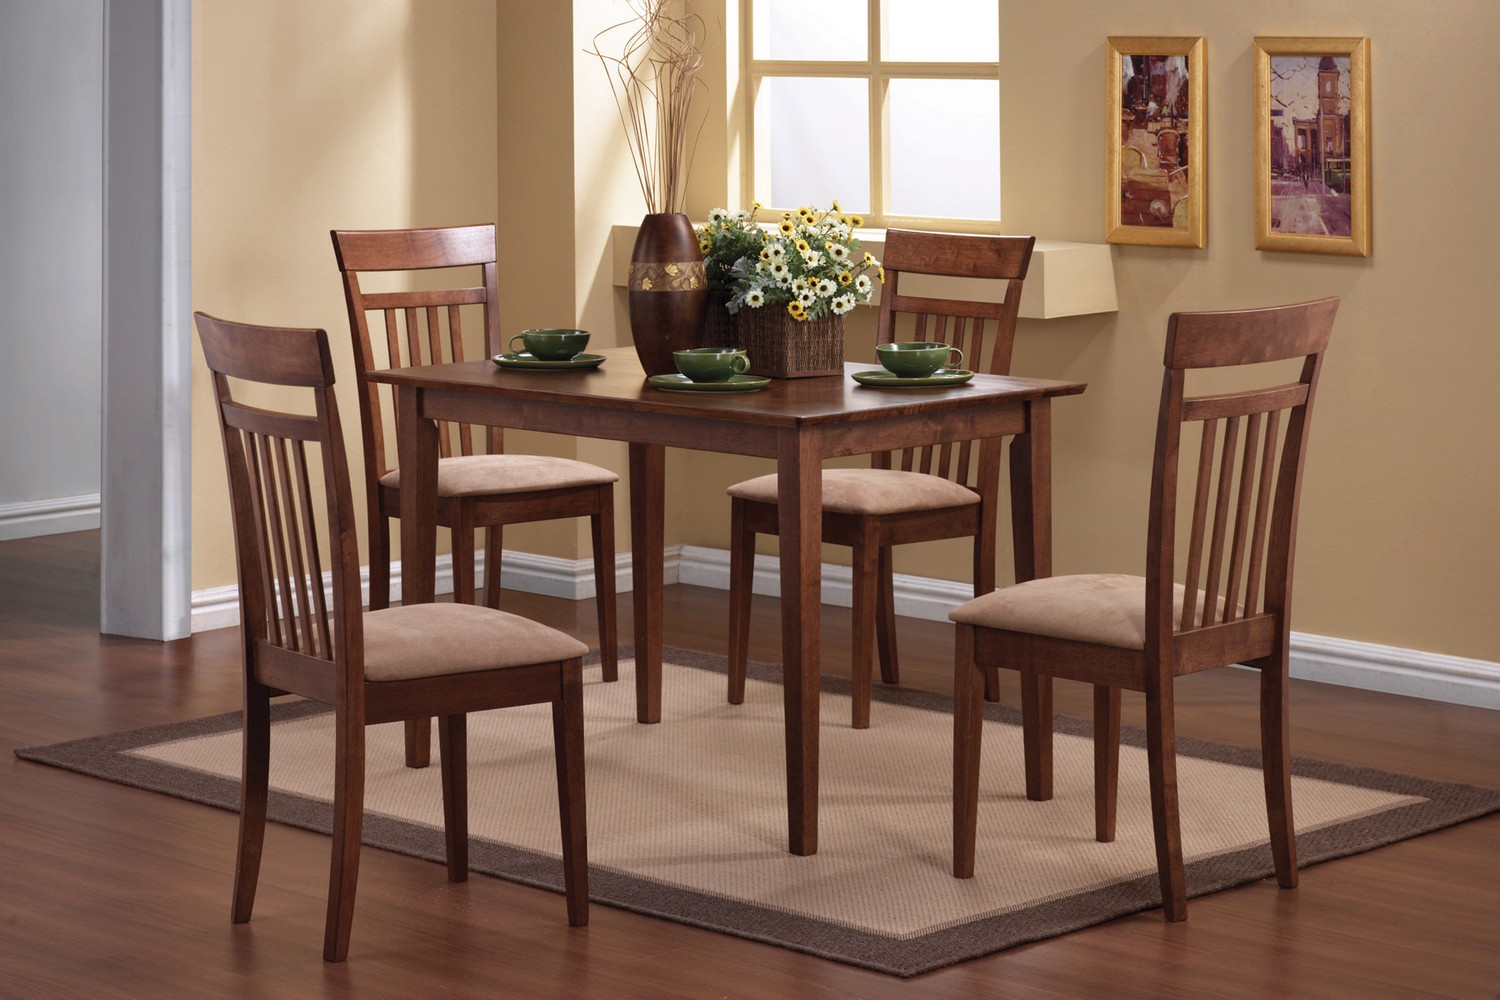 Coaster 150430 5-Piece Dining Set - Chestnut/Beige Fabric